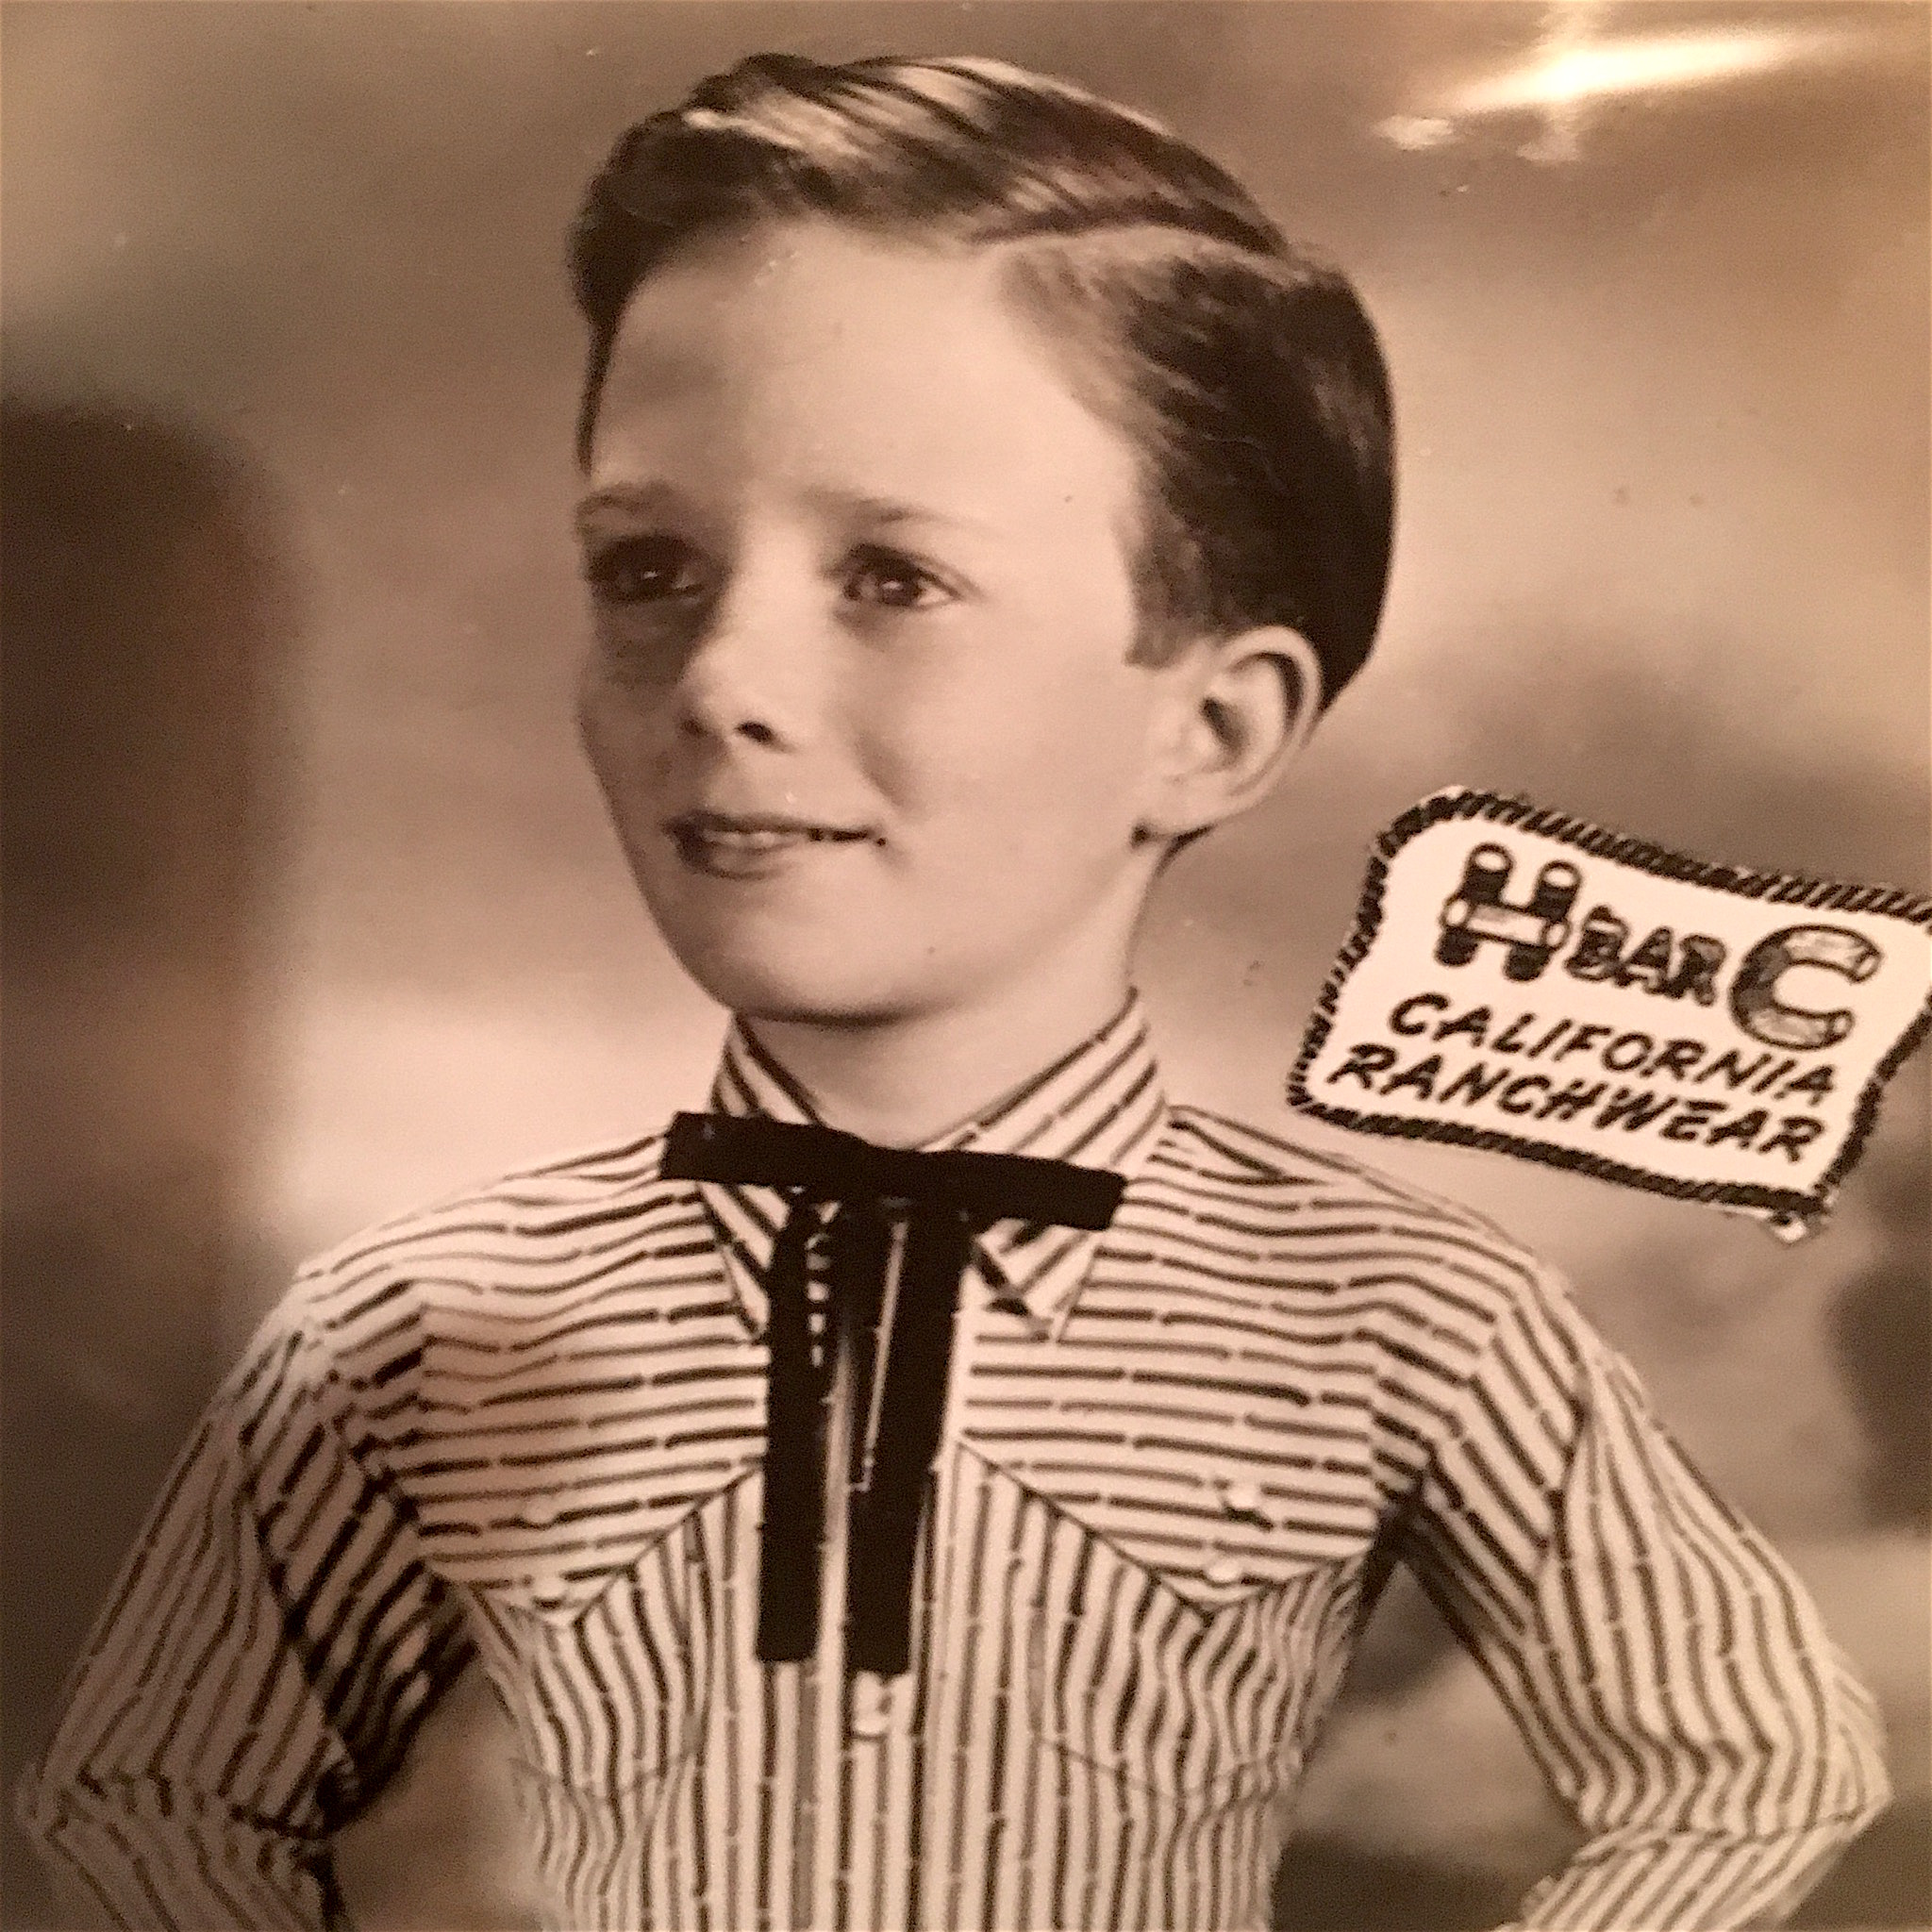 Child modeling in an H-Bar-C California Ranchwear shirt with a black string tie